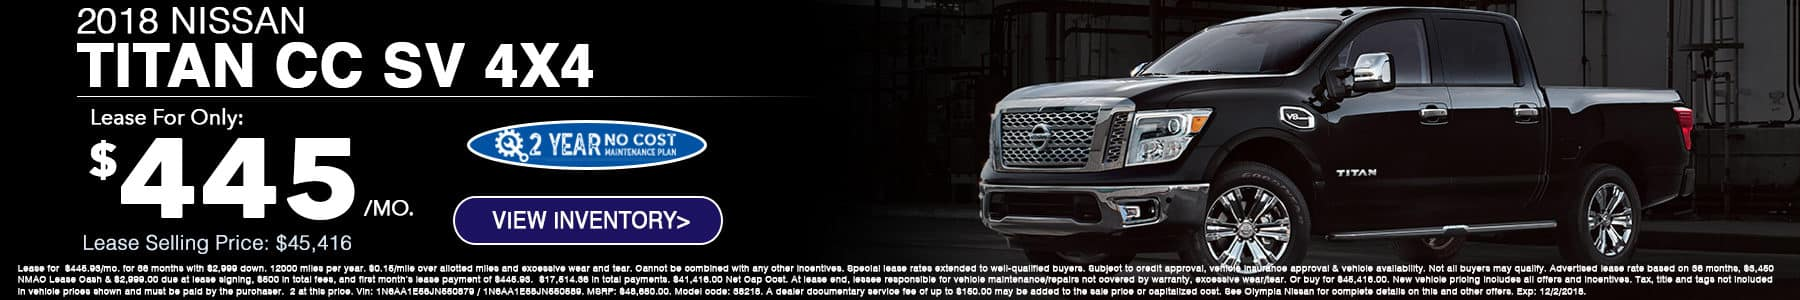 Nissan Titan Special at Olympia Nissan